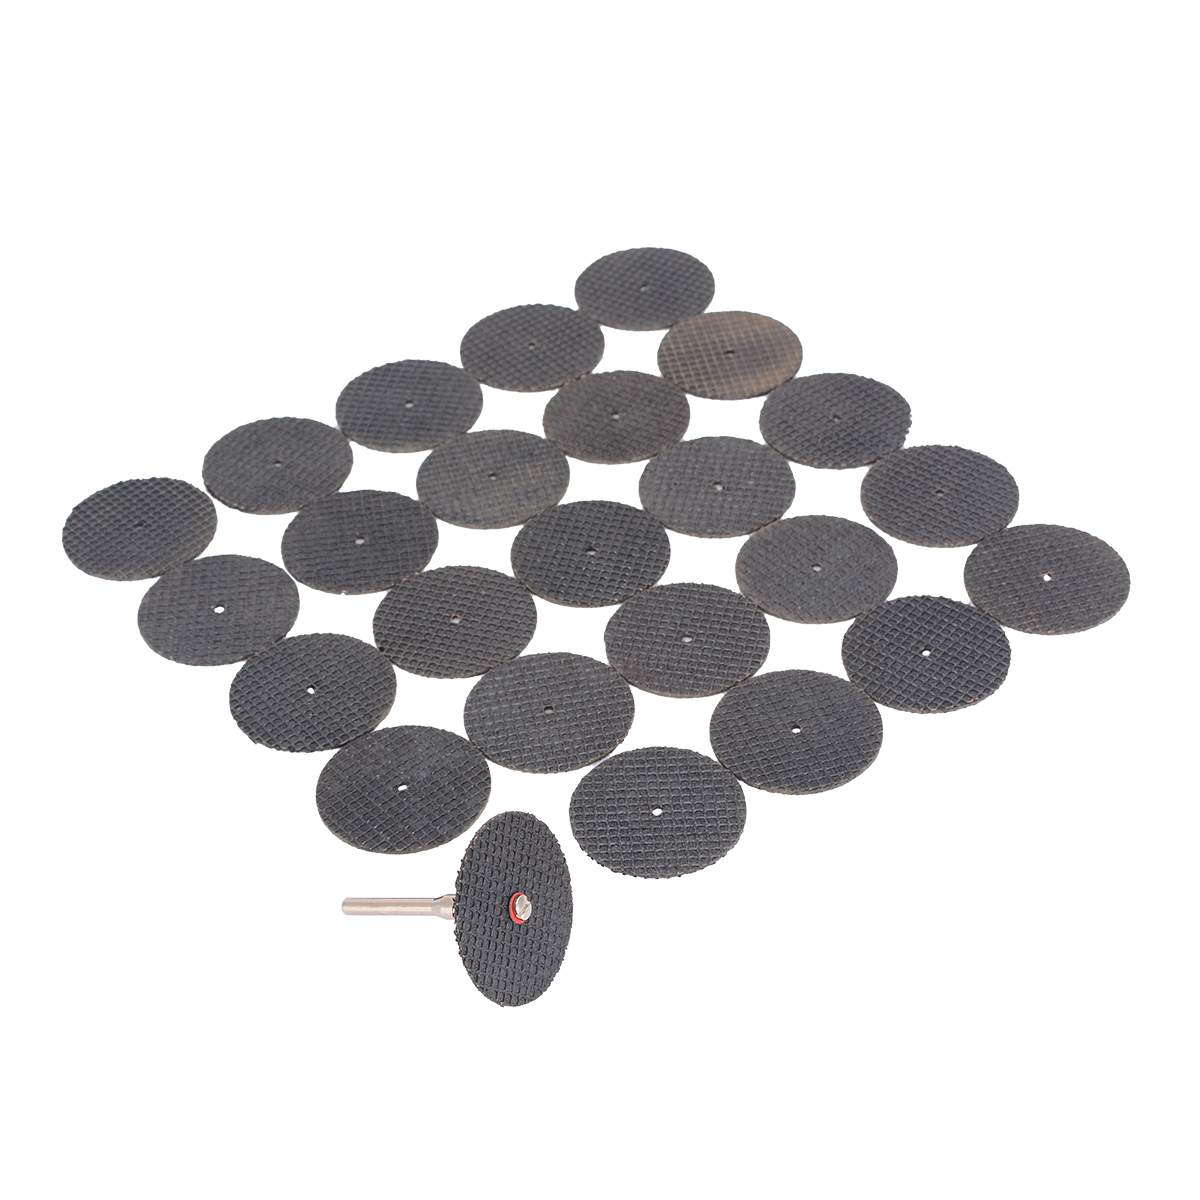 25pcs Abrasive Resin Cutting Wheel 32mm Cut-off Discs Set with Mandrel 37mm x 2mm Mayitr For Rotary Tools